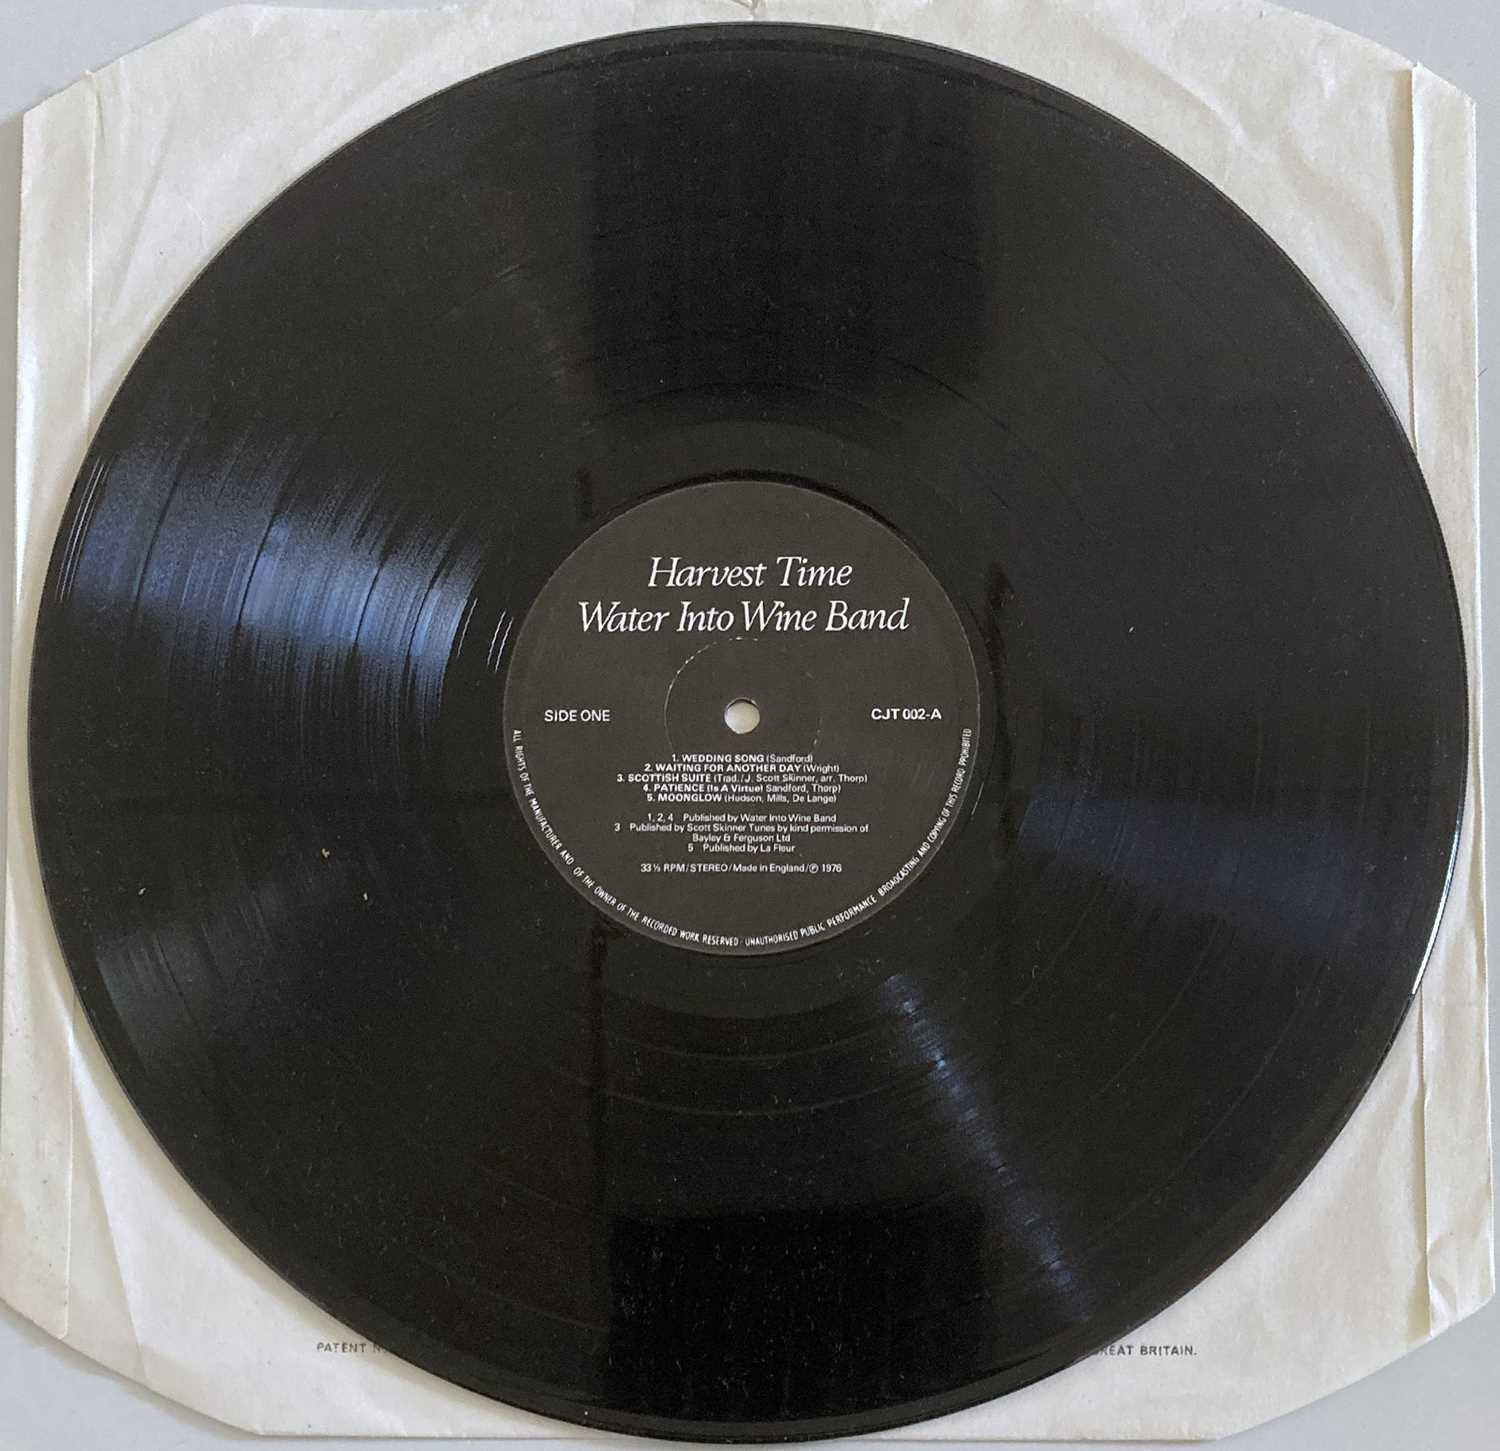 WATER INTO WINE BAND - HARVEST TIME LP (ORIGINAL SELF RELEASED PRESSING - CJT 002) - Image 4 of 4